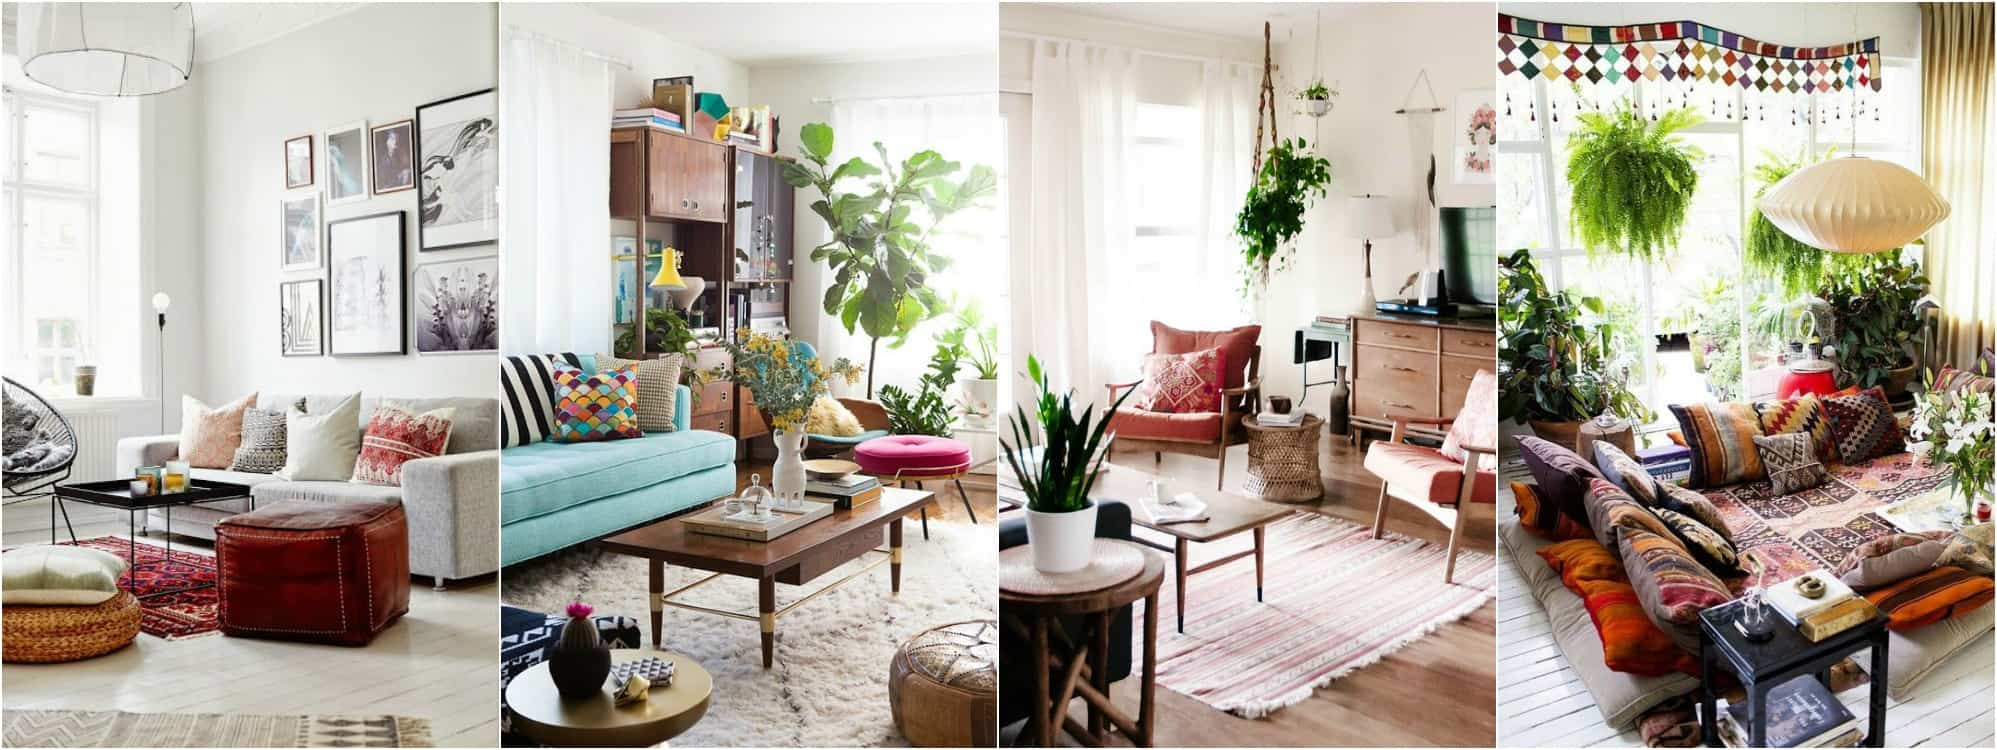 BOHO CHIC LIVING ROOM PLANS One Room Challenge PLACE OF MY